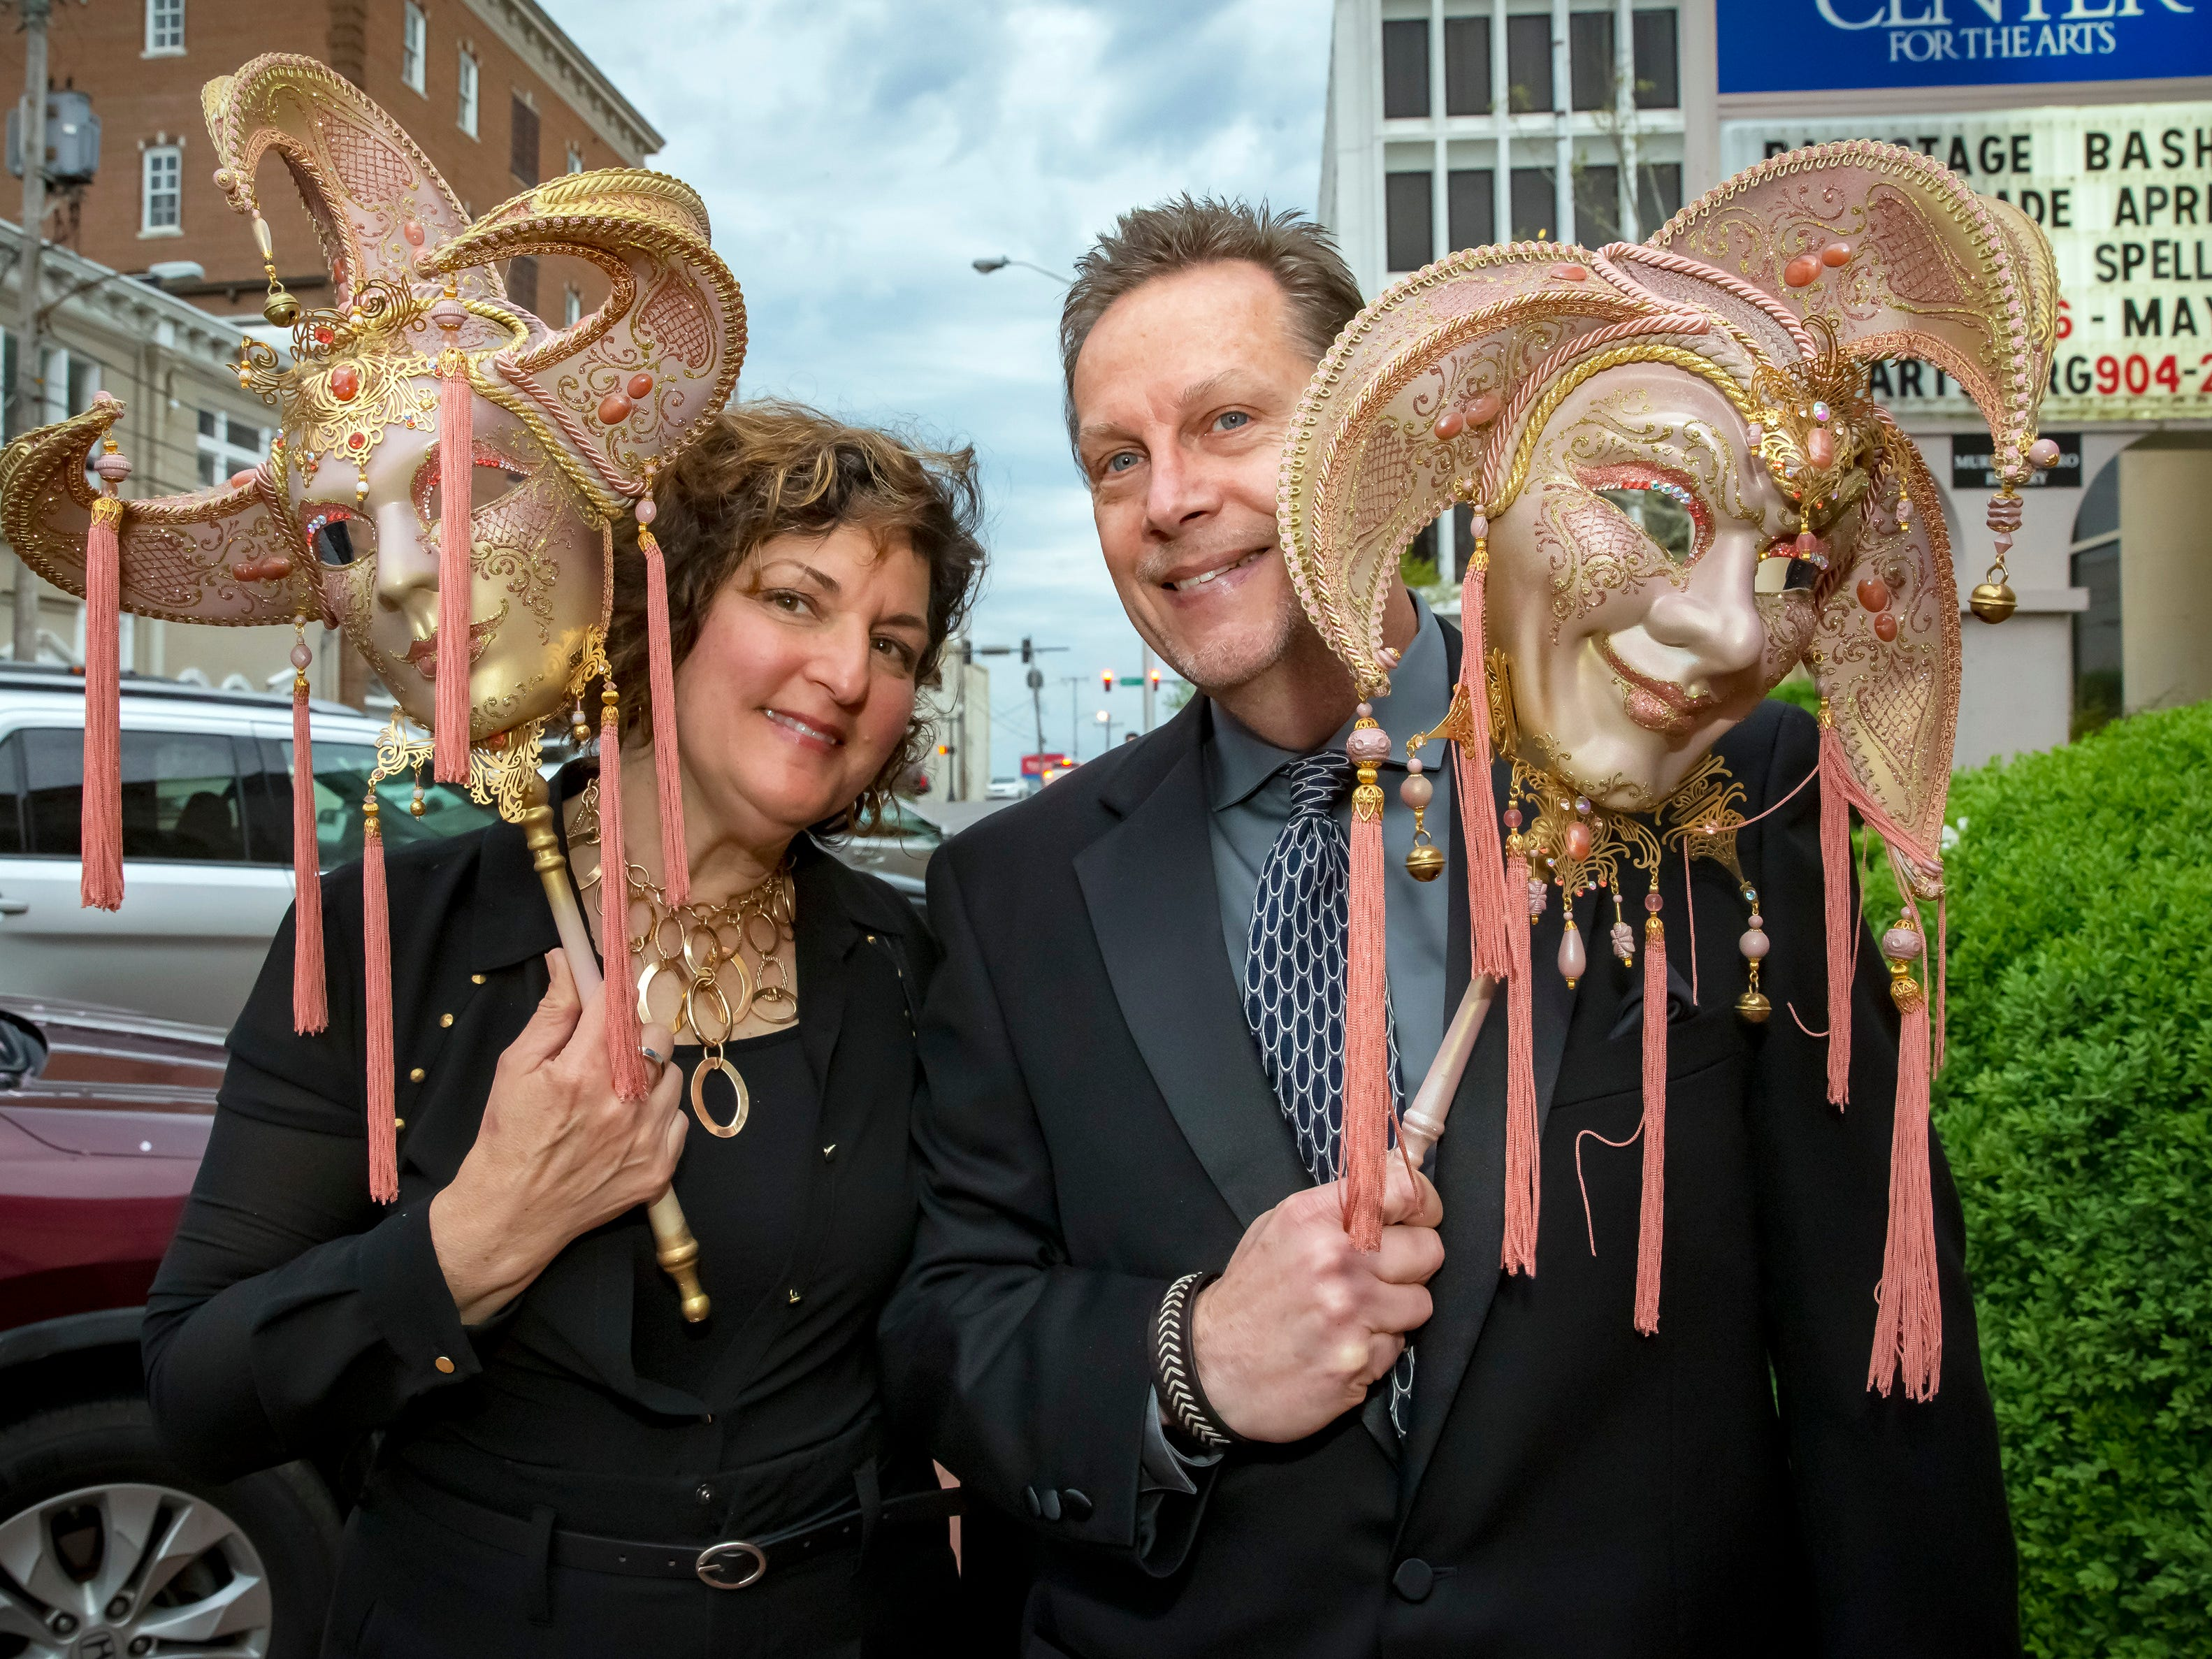 Lisa and Mike Browning were among the attendees at the Center for the Arts' annual Masquerade Bash on Saturday, April 13, 2019.